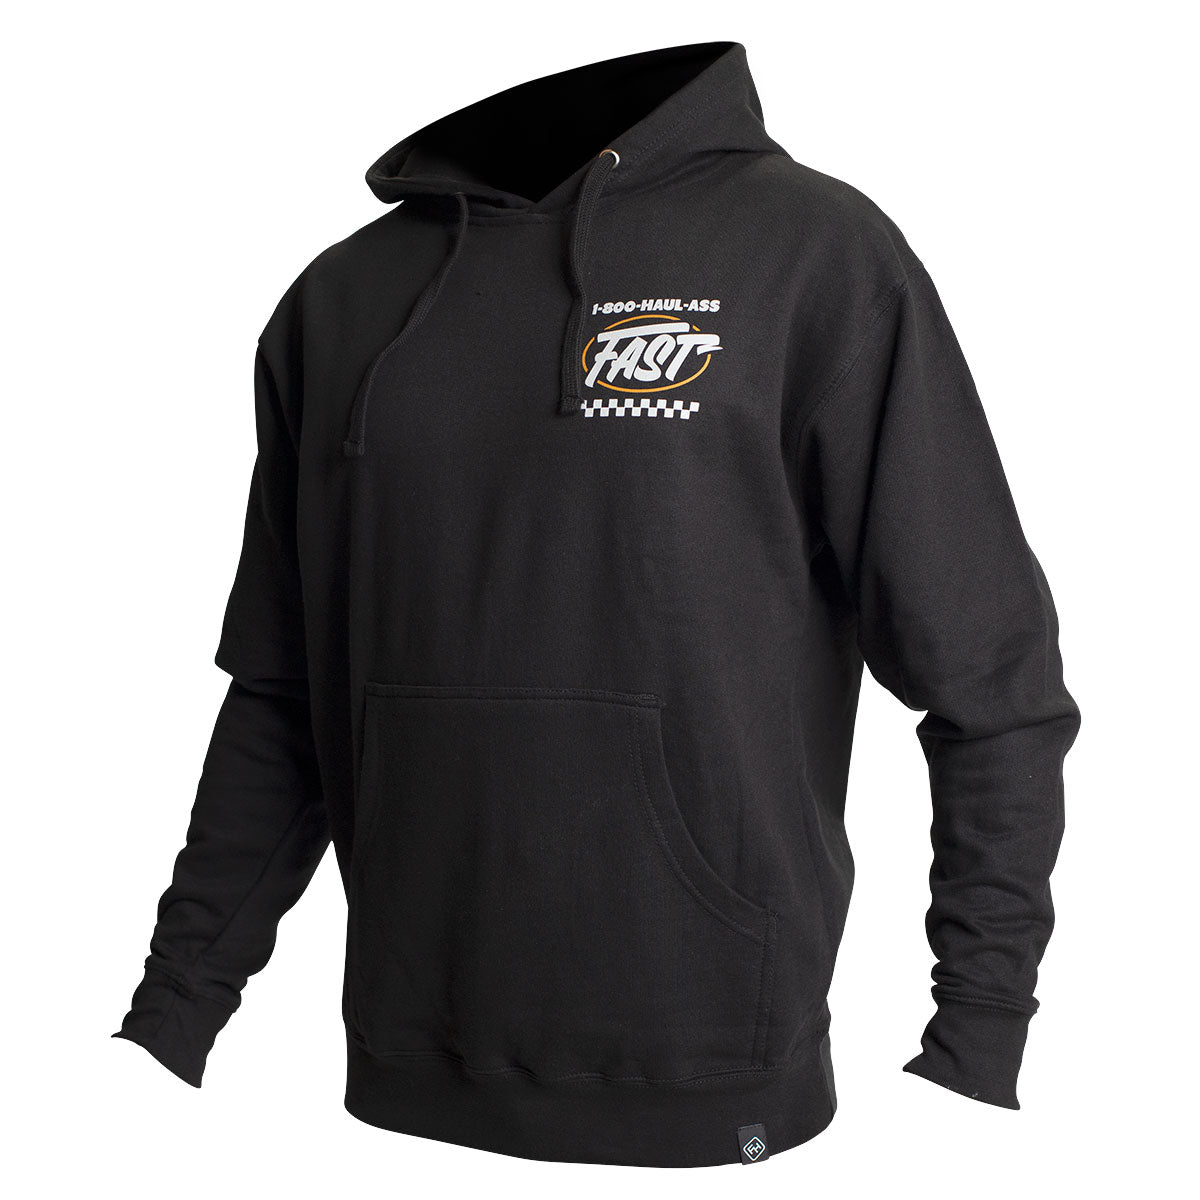 Toll Free Hooded Pullover - Black